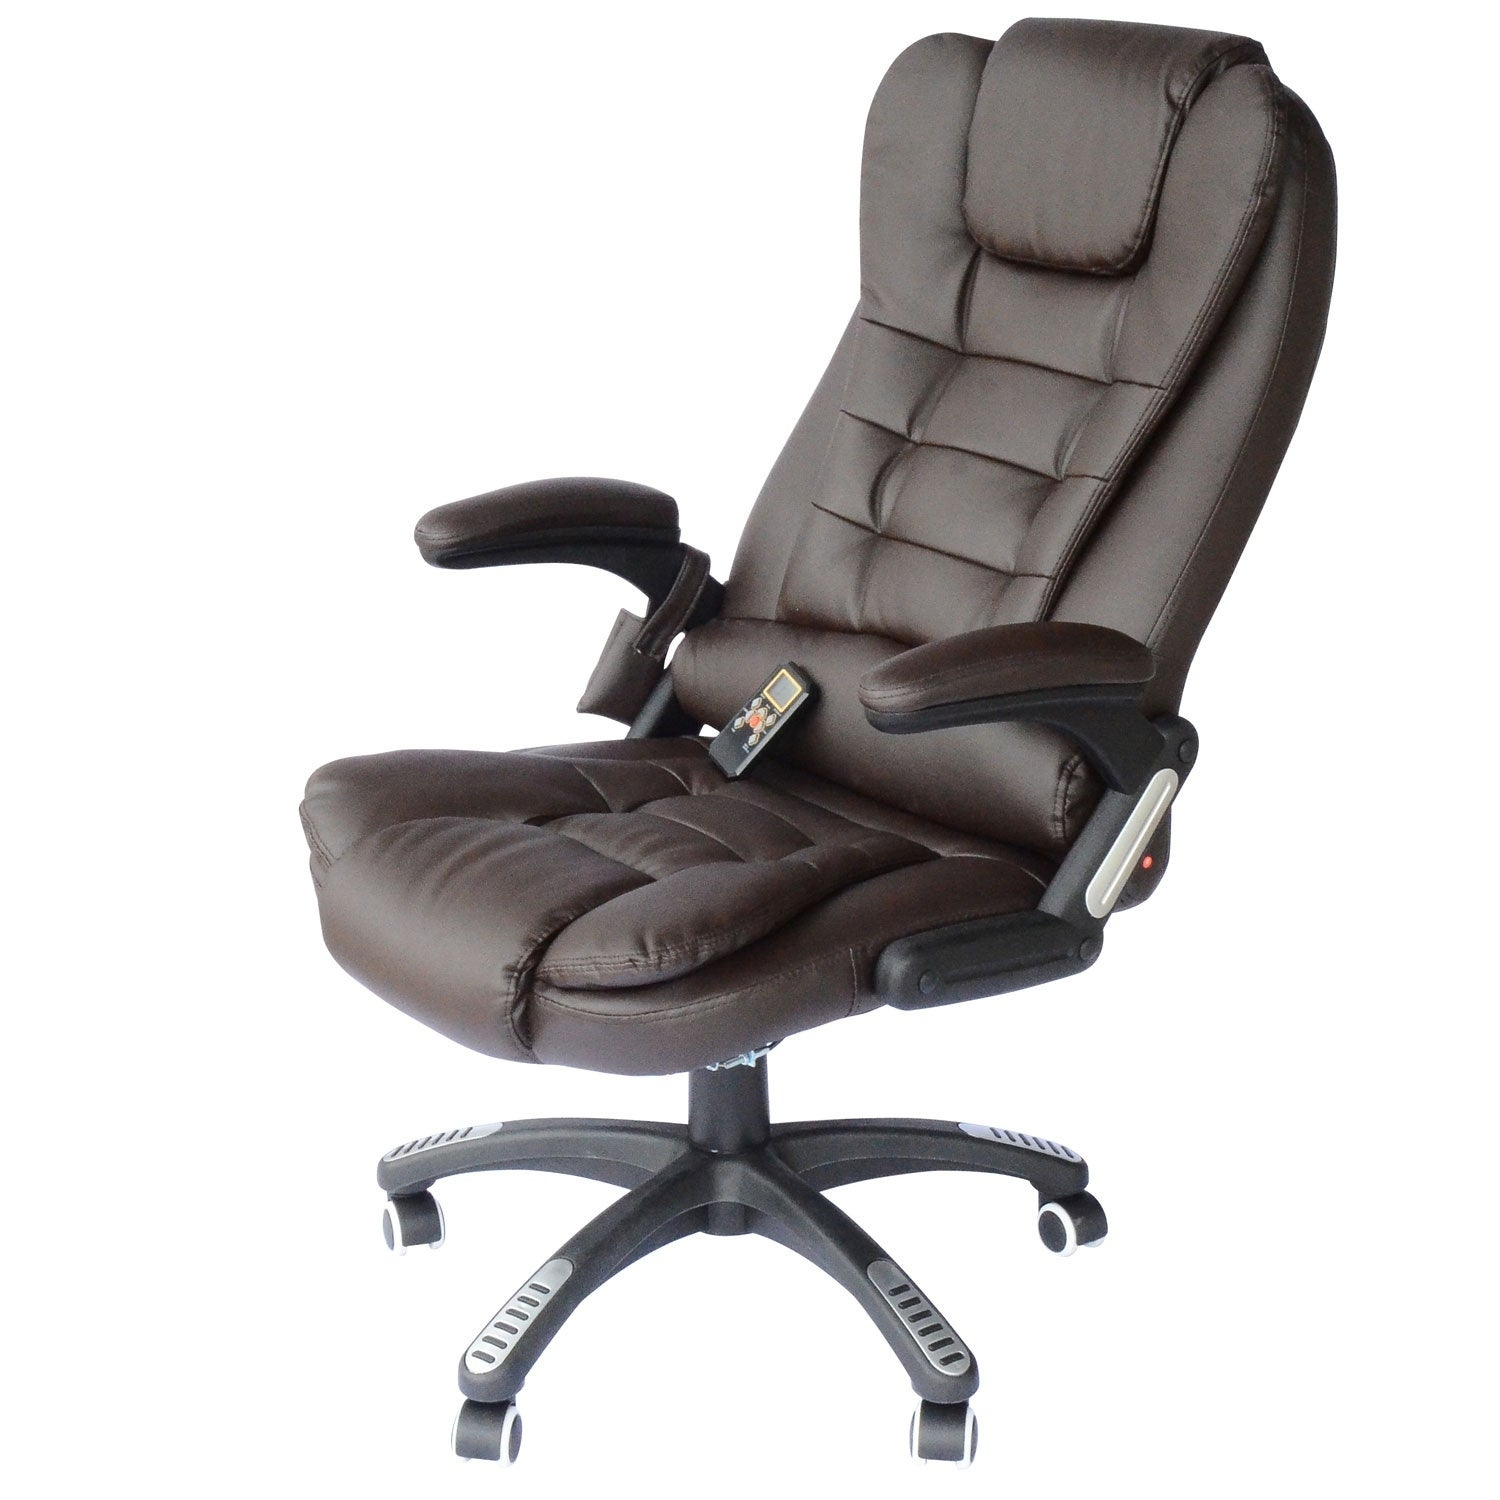 Homcom Executive Ergonomic Heated Vibrating Mage Office Chair Brown Free Shipping Today 18088215